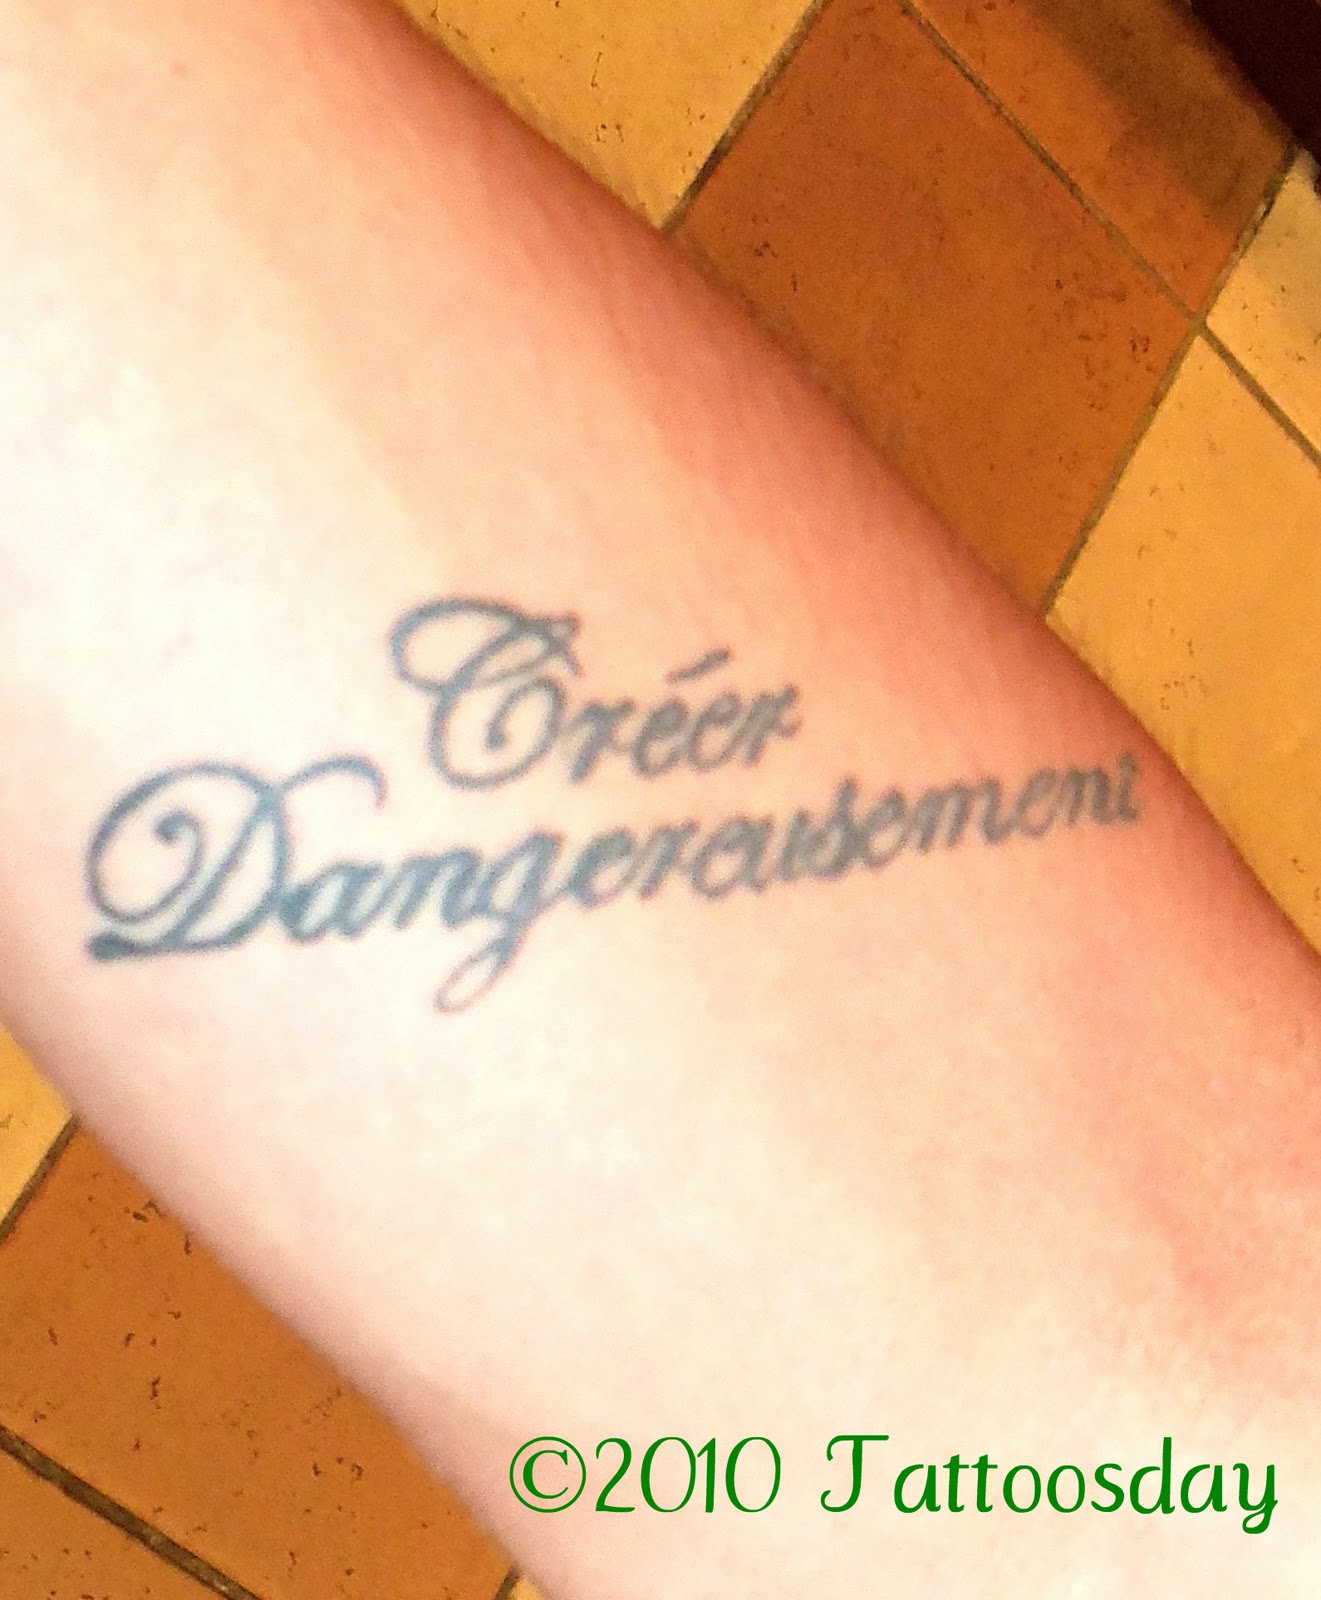 tattoosday a tattoo blog brian s ink speaks about art the words creacuteer dangereusement are the french title of a 1957 essay by albert camus entitled create dangerously this essay on realism and artistic